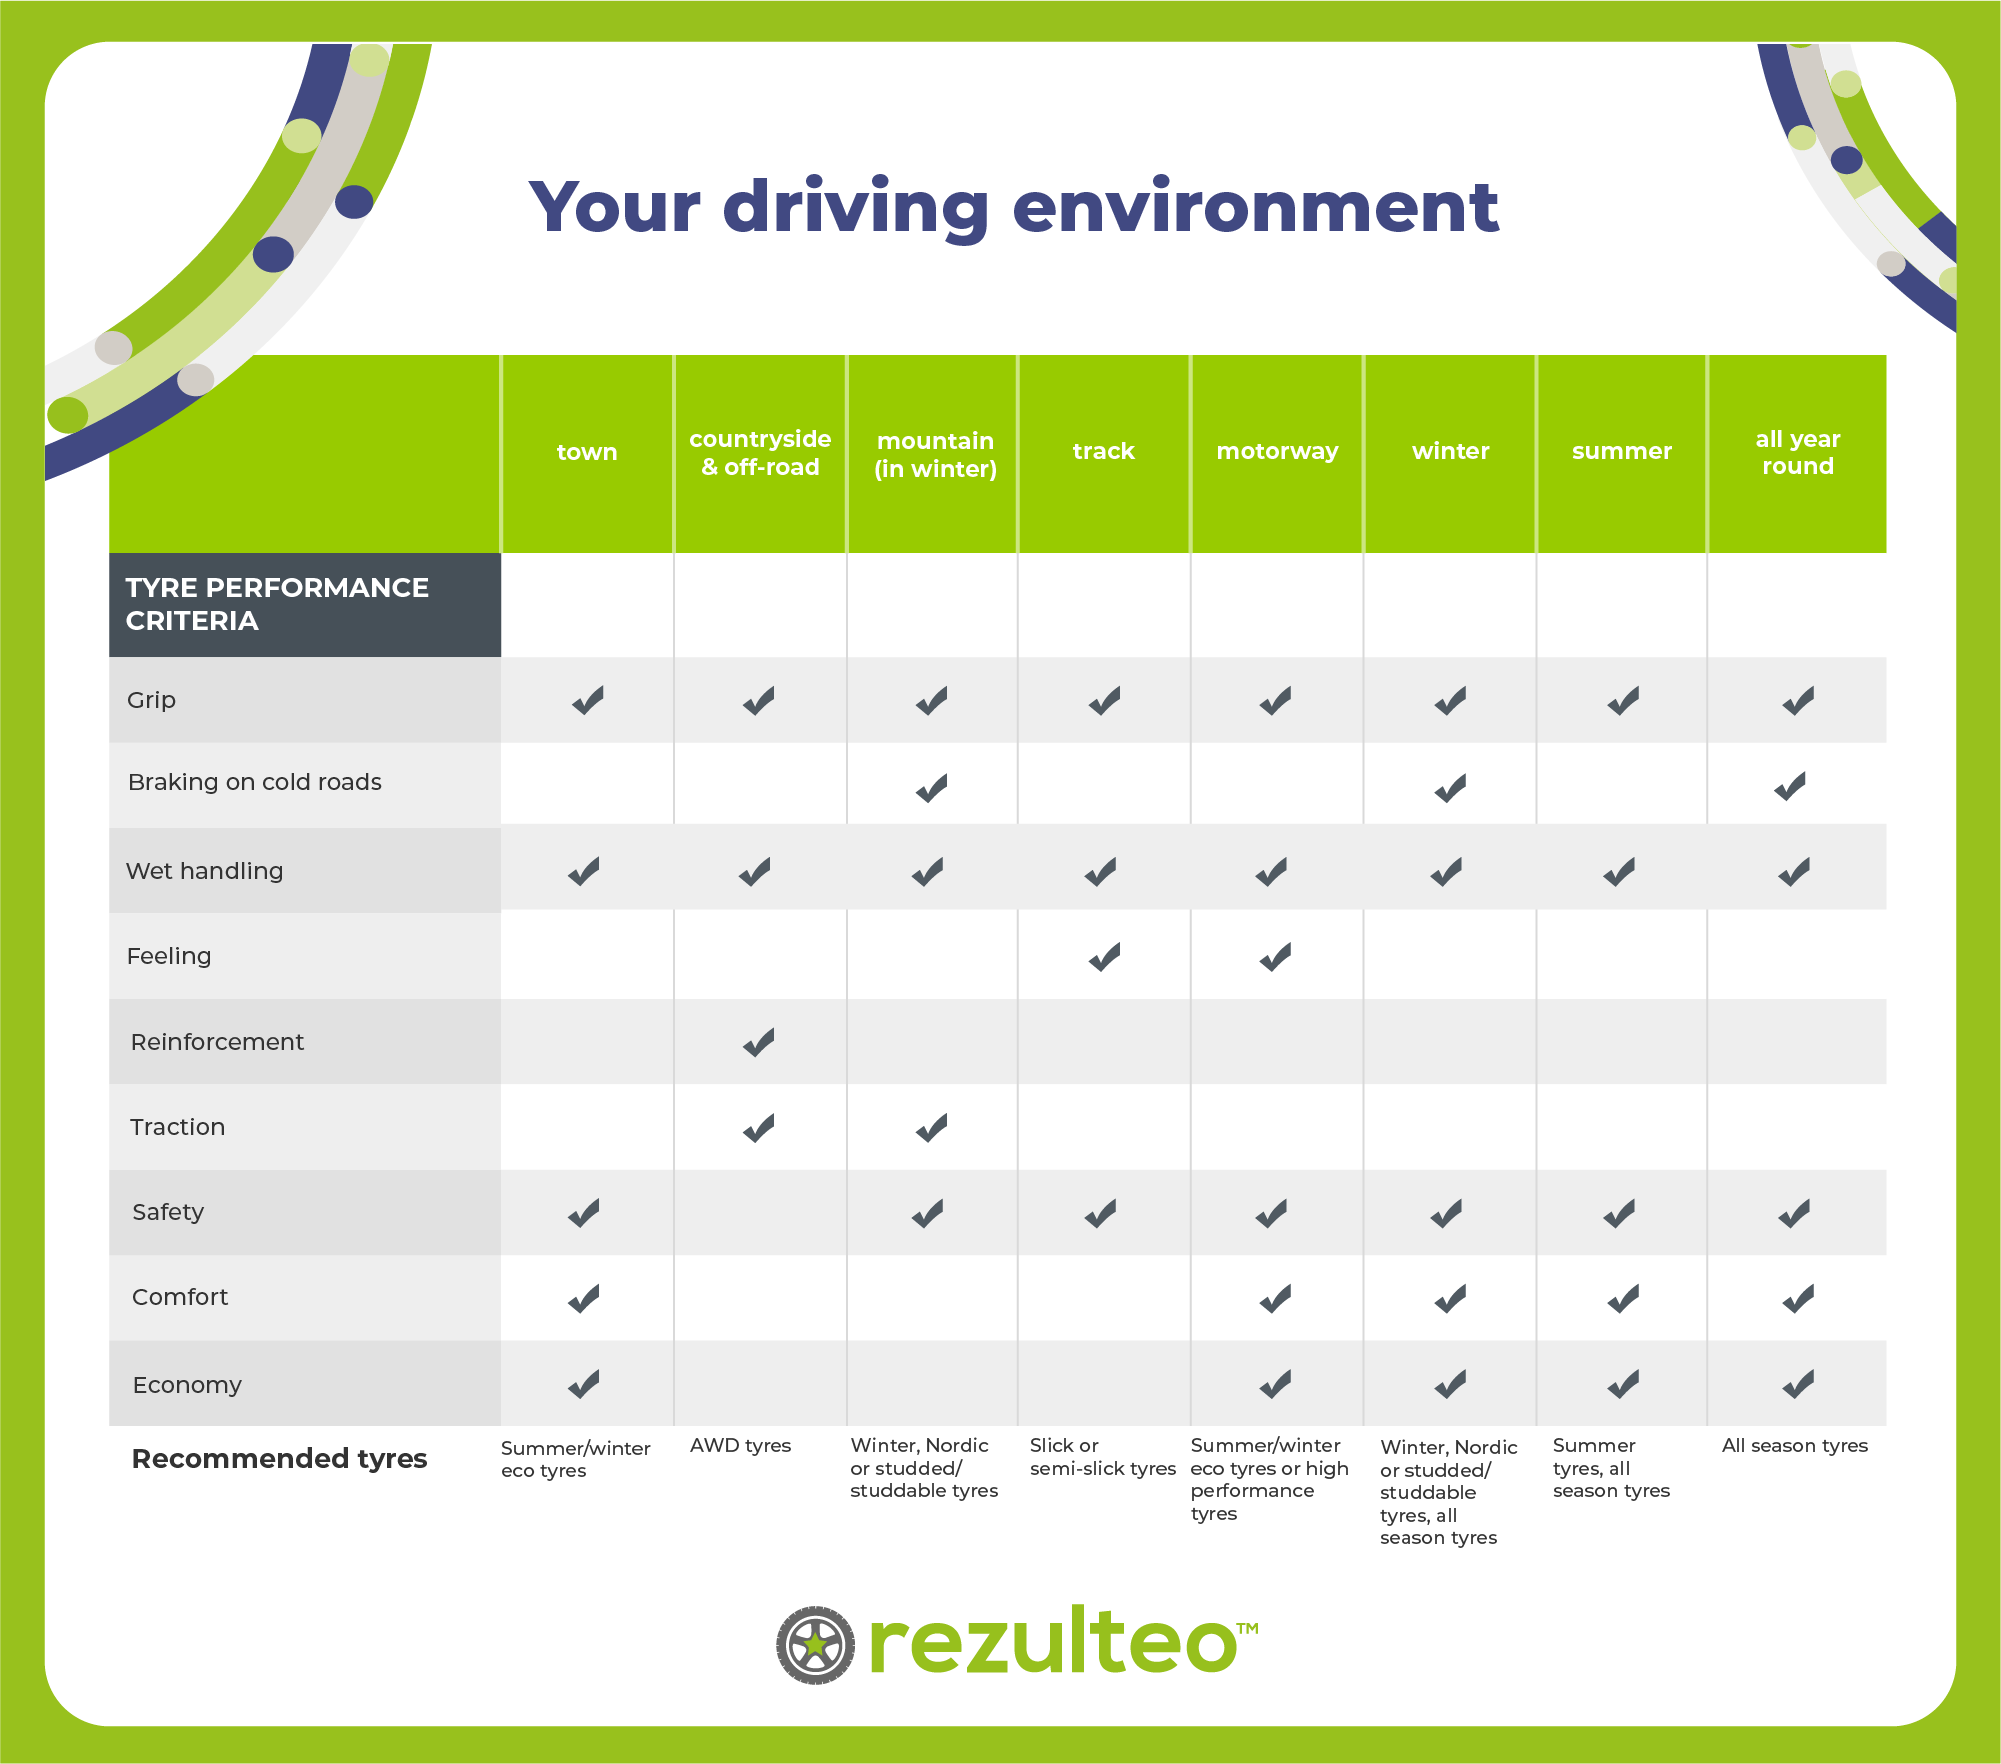 Your driving environment